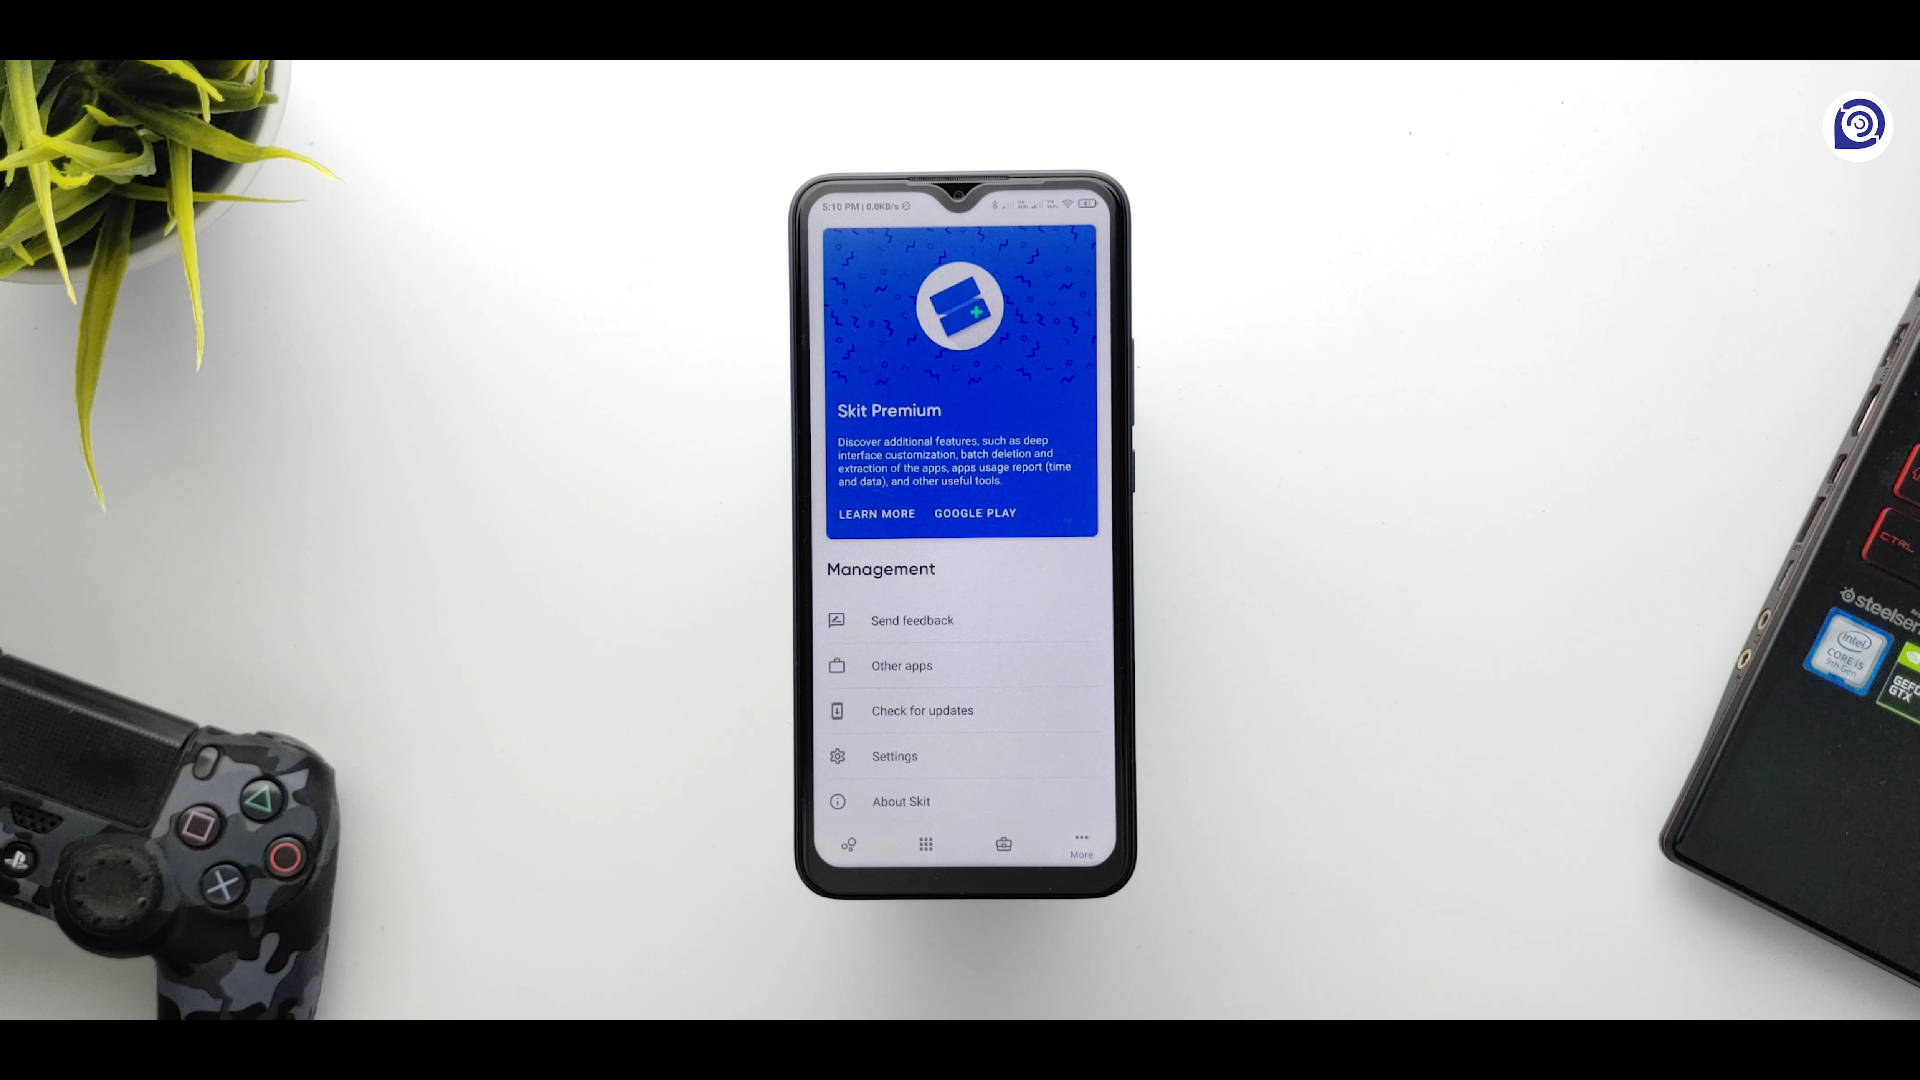 The Ultimate App Manager for Android.